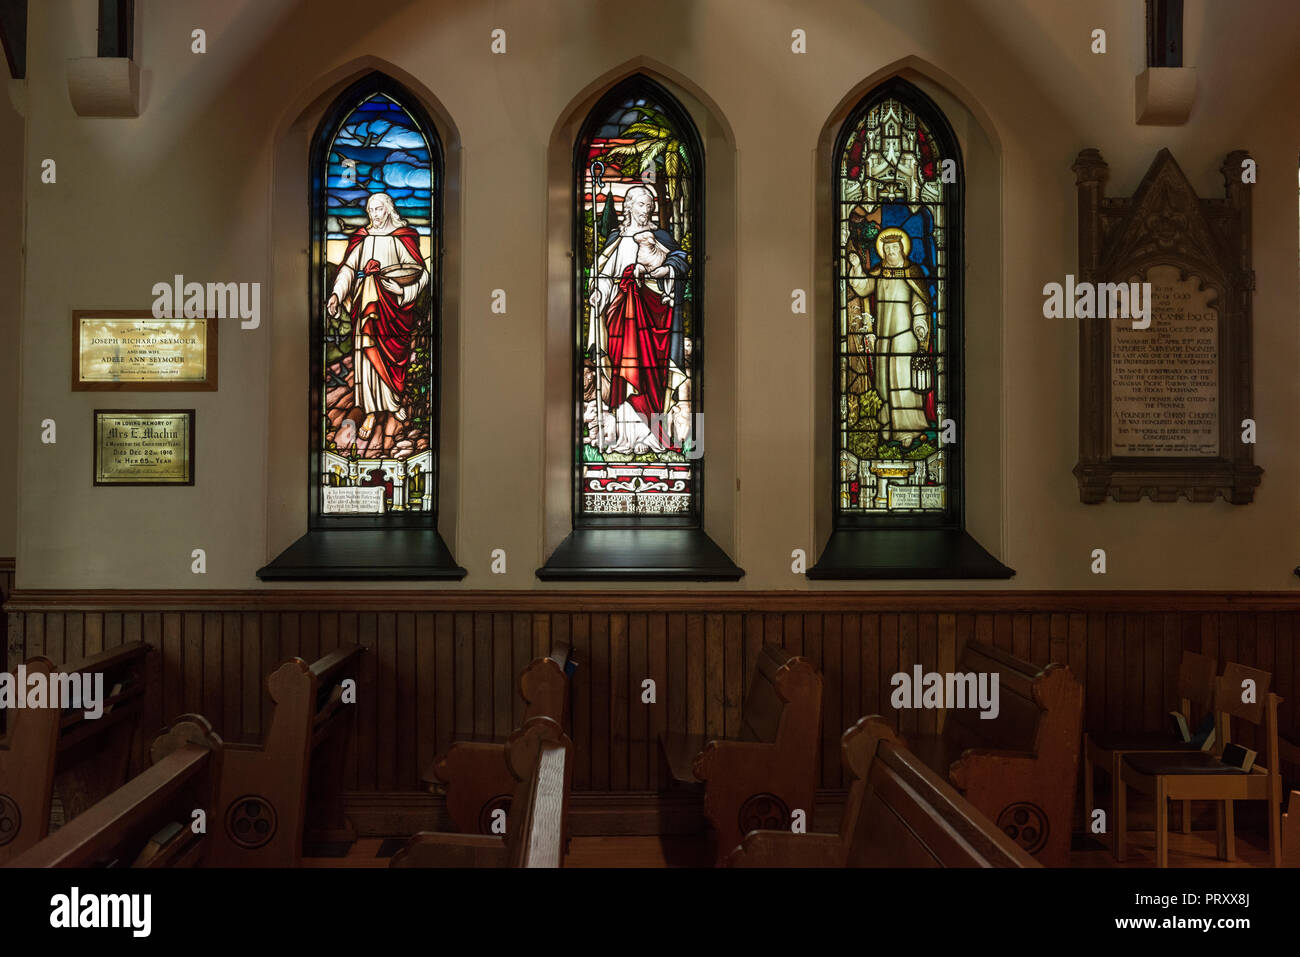 Stain glass windows in Gothic Style arches, interior of the Christ Church Cathedral, Vancouver City. - Stock Image